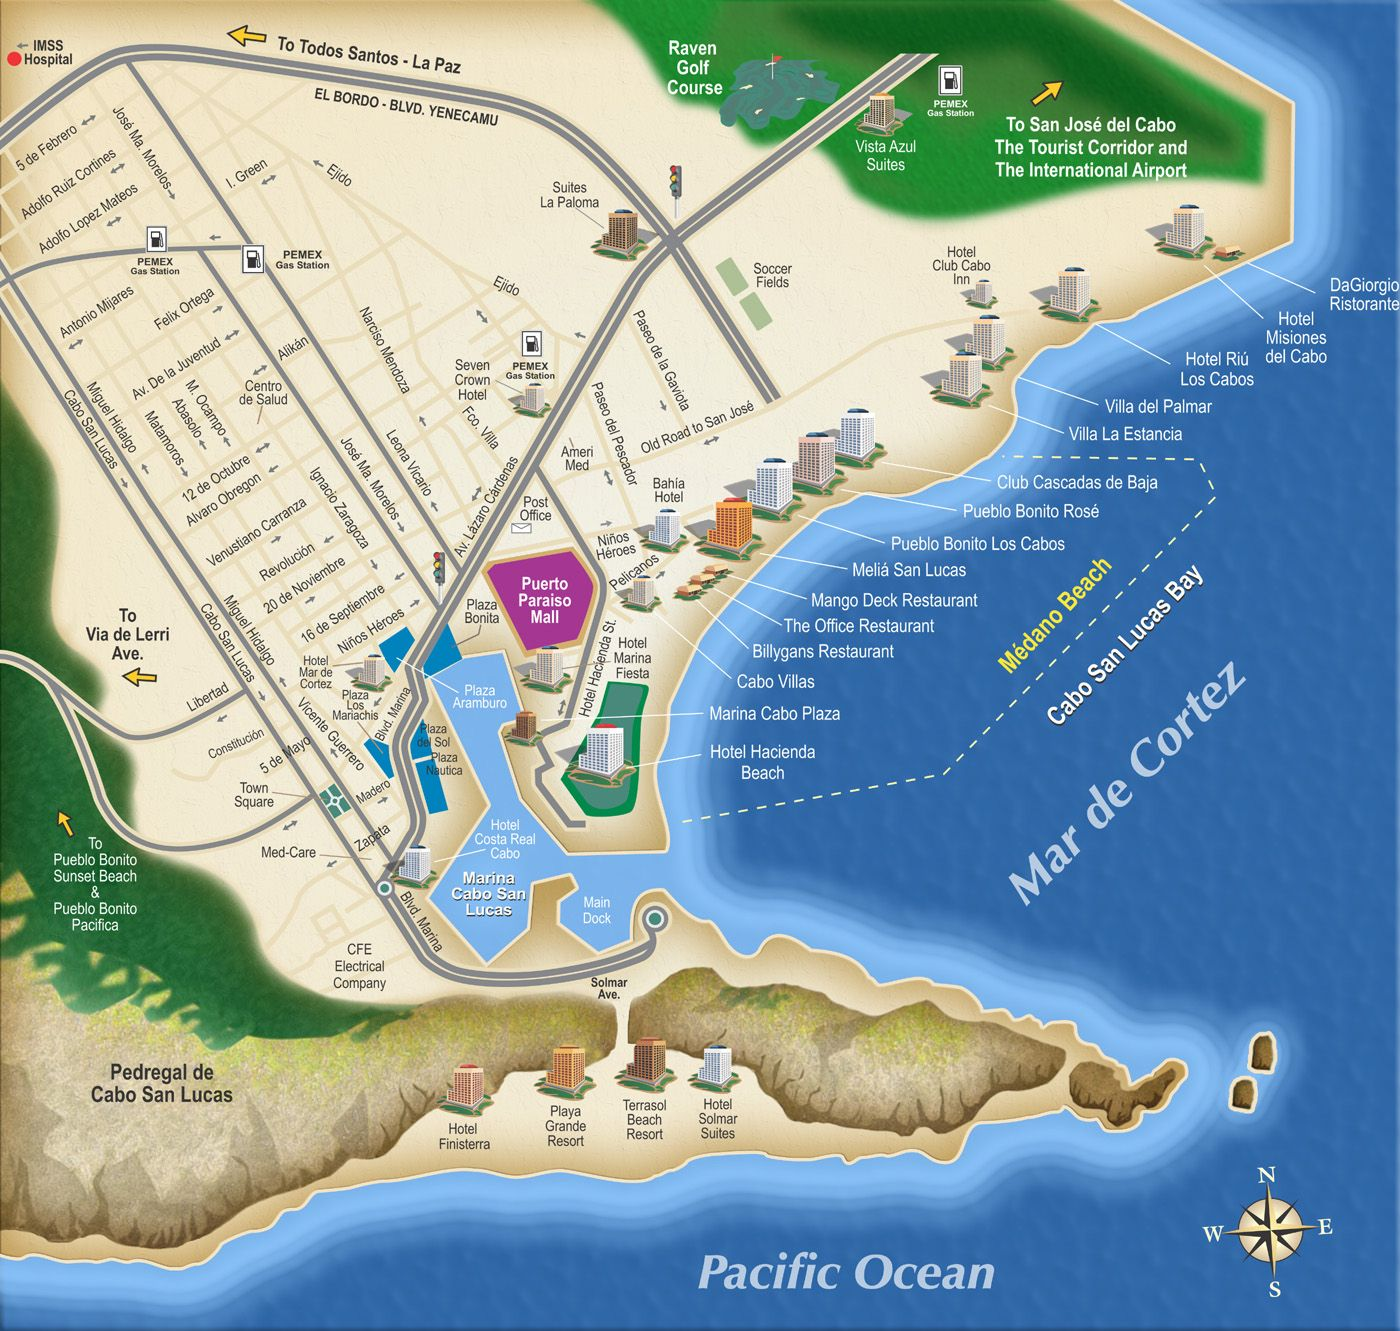 Pin by SouthWest Sportsmen on I LOVE MAPS in 2019 | Cabo san ...